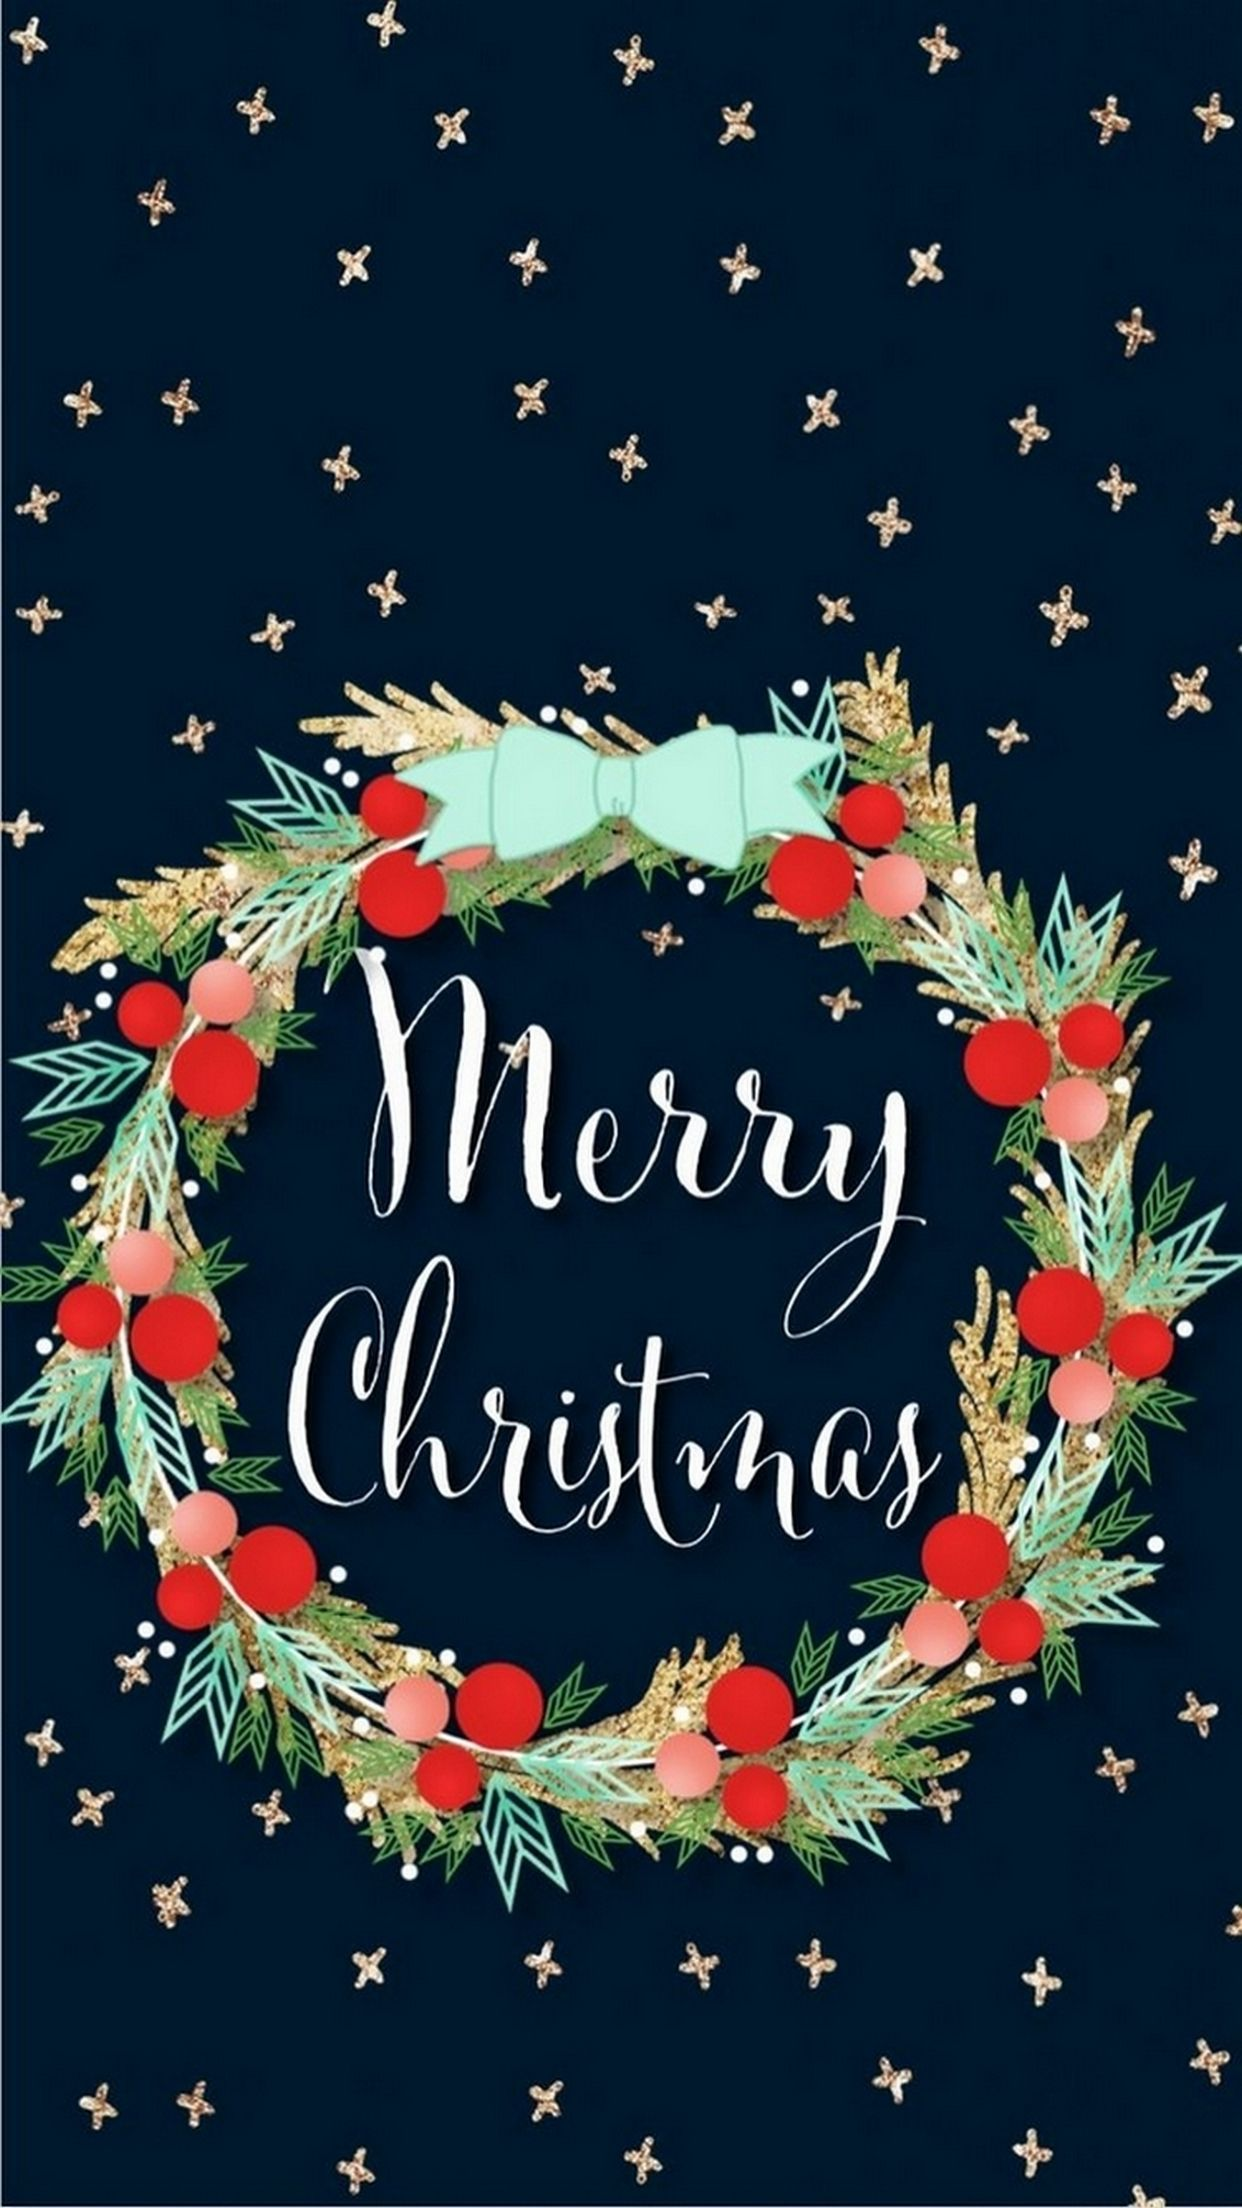 1242x2208 - Wallpaper for Christmas 3